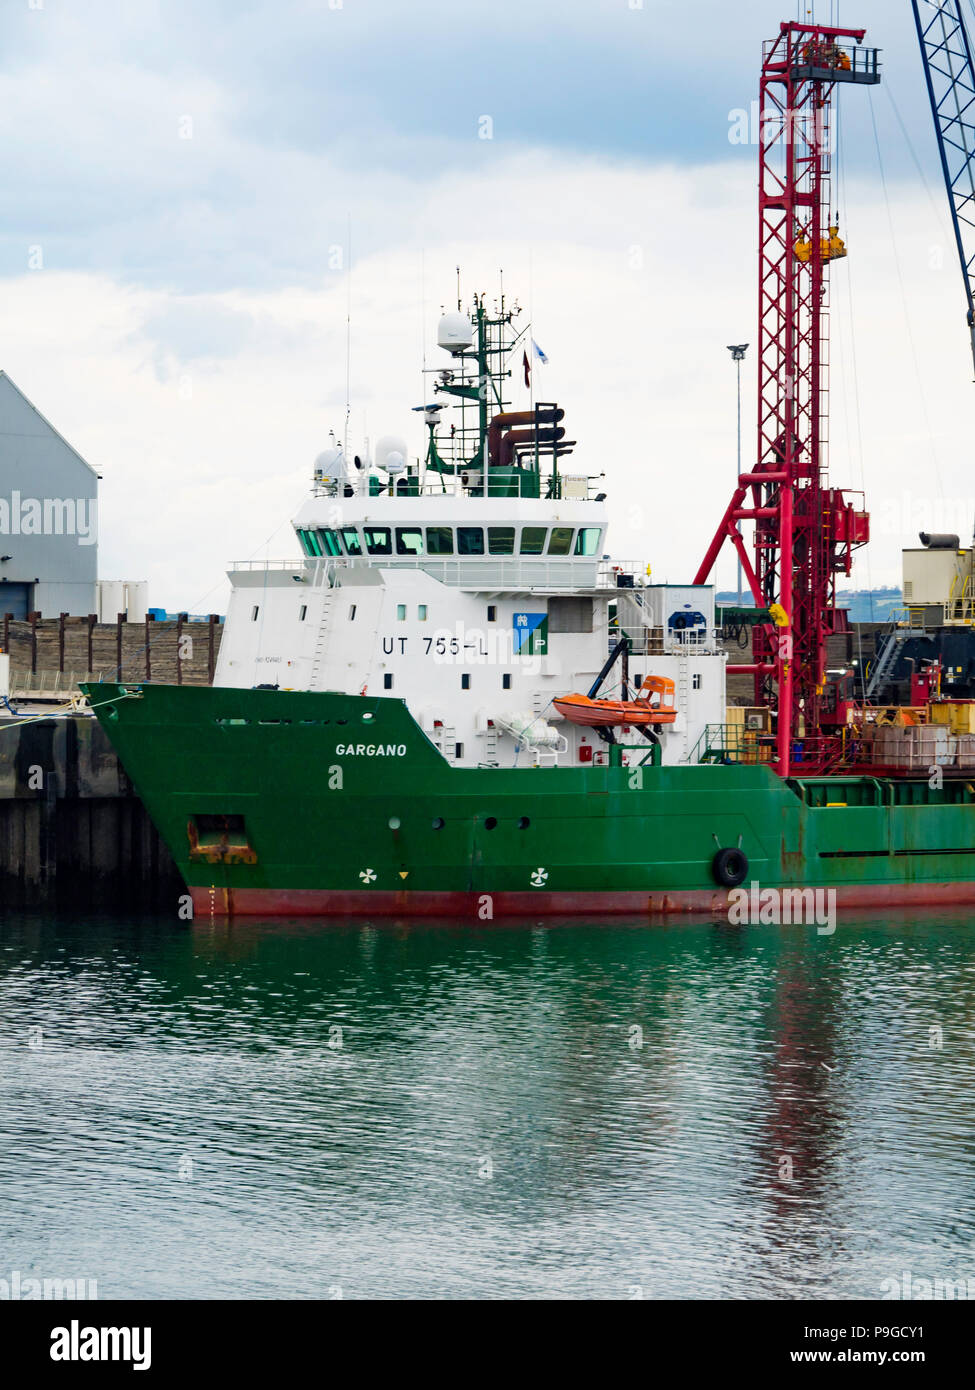 Offshore Supply Vessel Gargano IMO: 9249403  owned by Gulfmark fitted with a drilling rig for carrying out geotechnical testing in port in Hartlepool - Stock Image